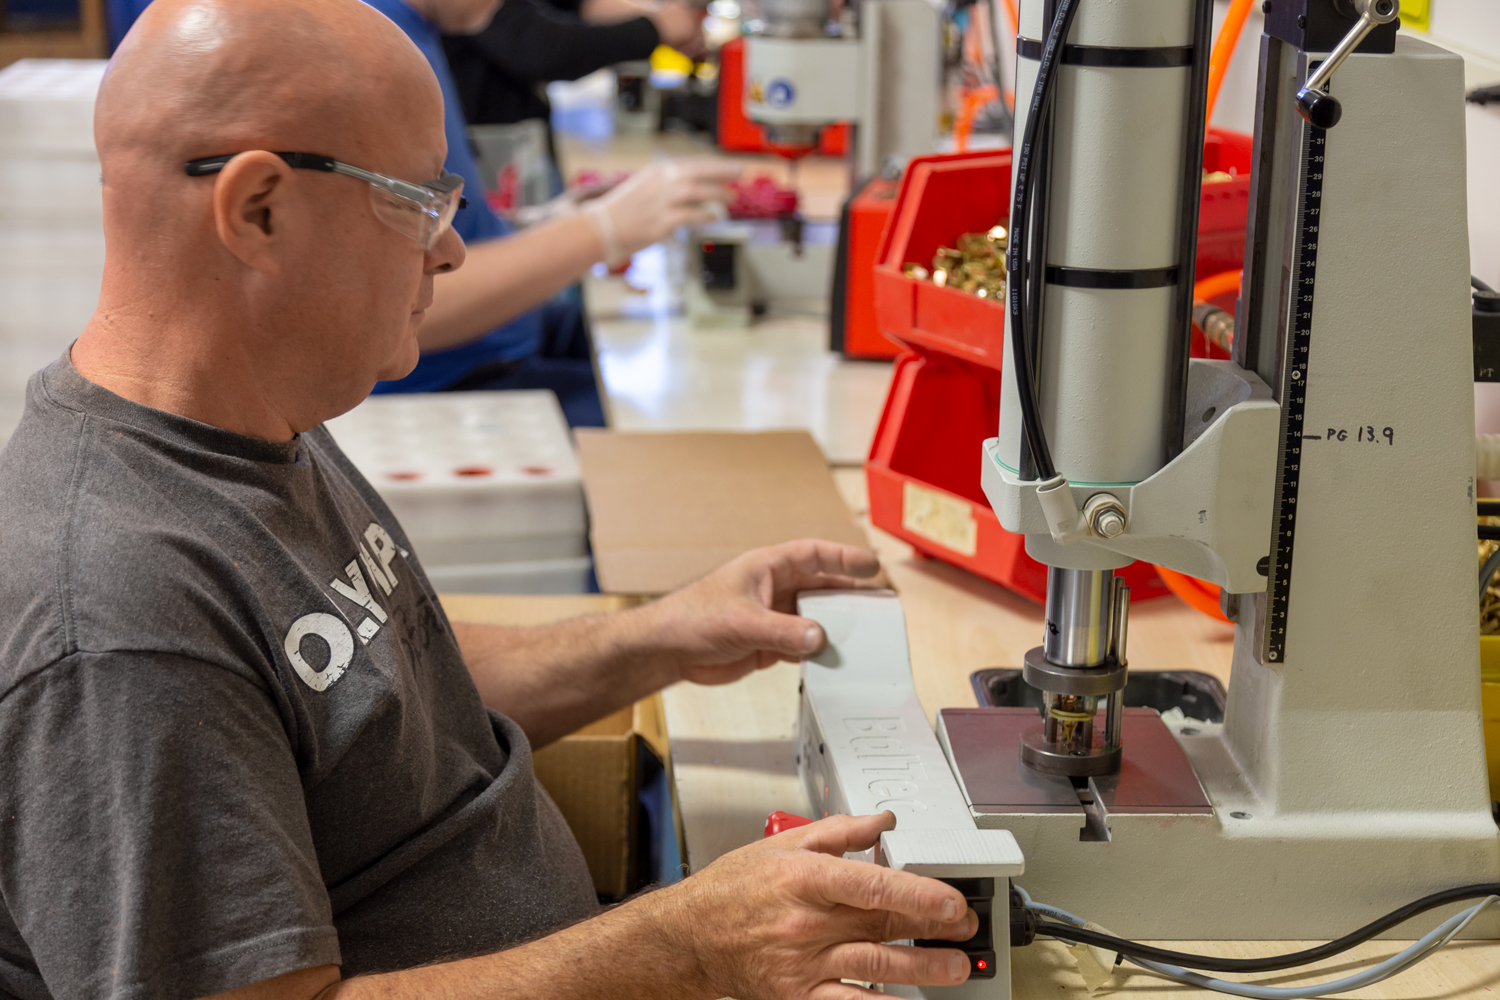 A worker is operating a machine at Alternatives Industry.